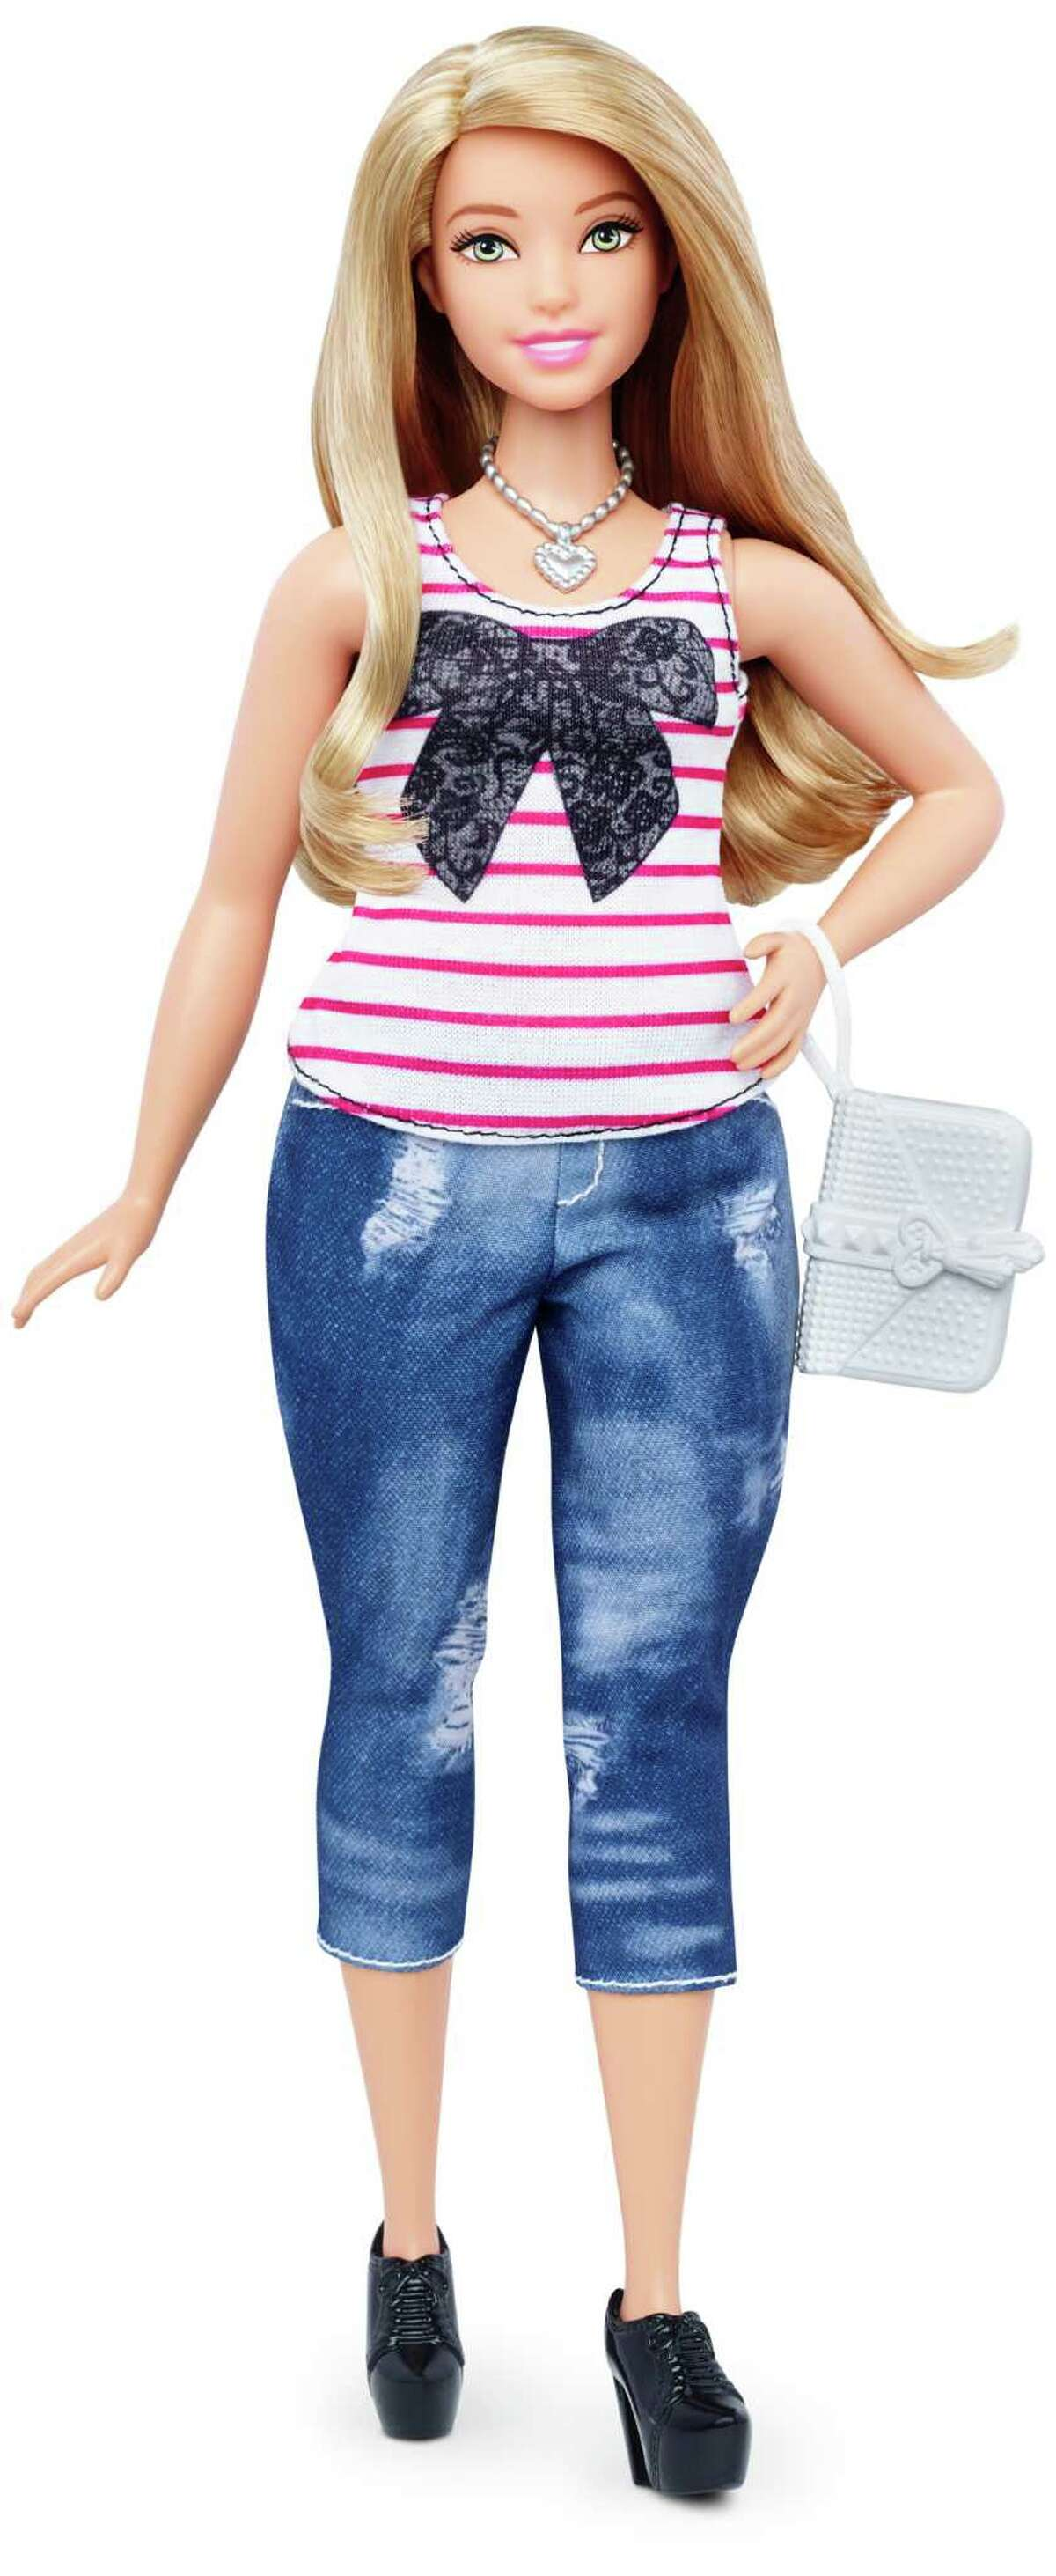 Curvy This photo shows a new, curvy Barbie Fashionista doll introduced in January 2016.